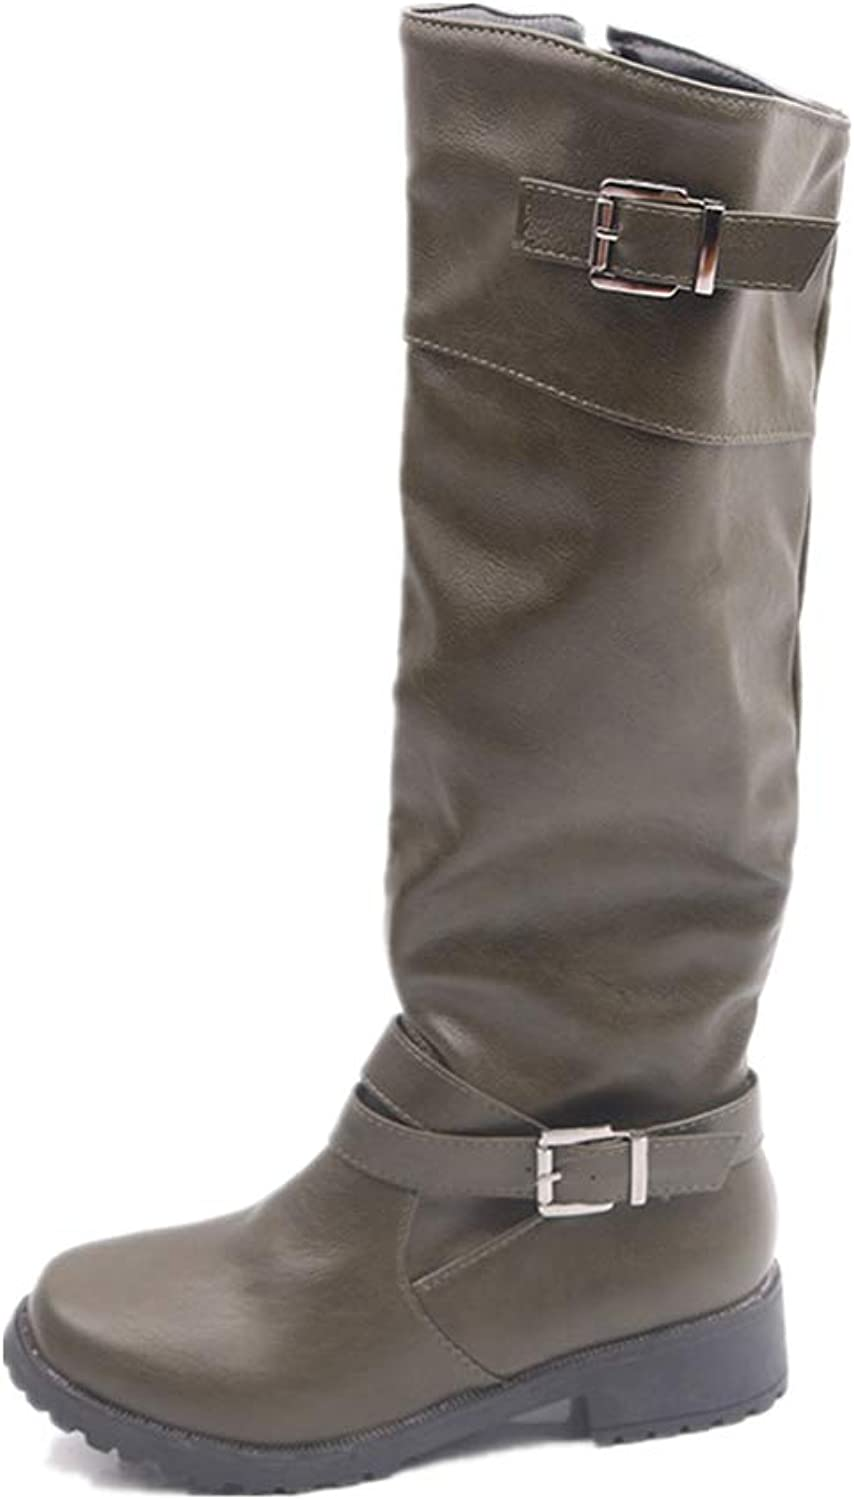 Women's Boots in The Tube with Low Boots Martin Boots